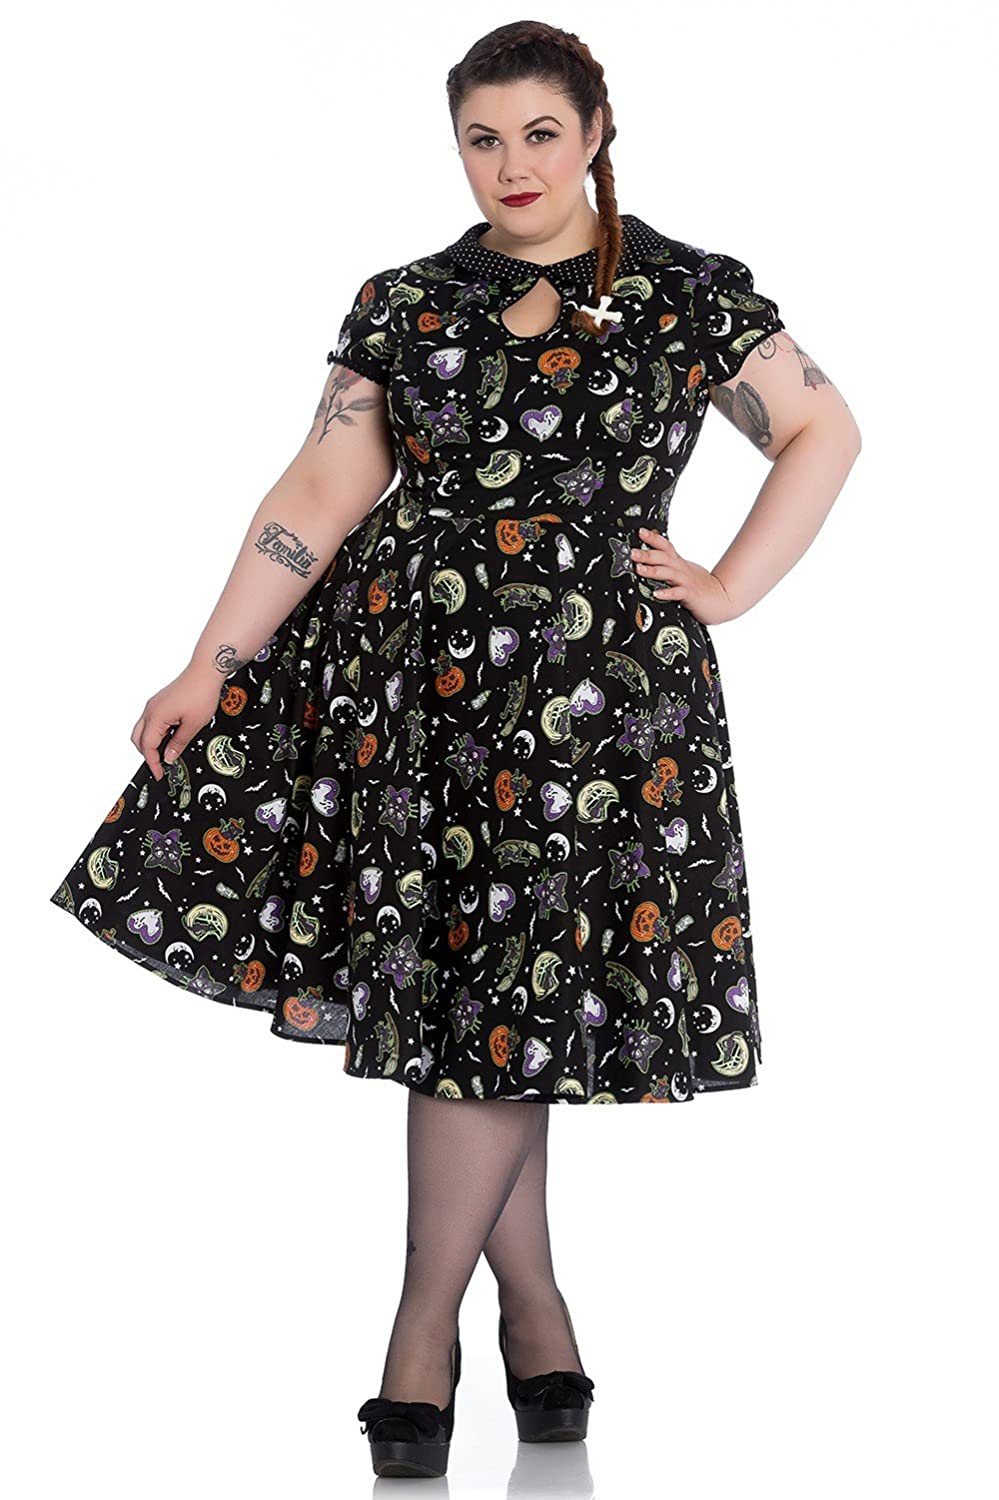 Easy Retro Halloween Costumes – Last Minute Ideas Hell Bunny Plus Size Gothic Halloween Black Cat Salem 50s Dress $80.99 AT vintagedancer.com